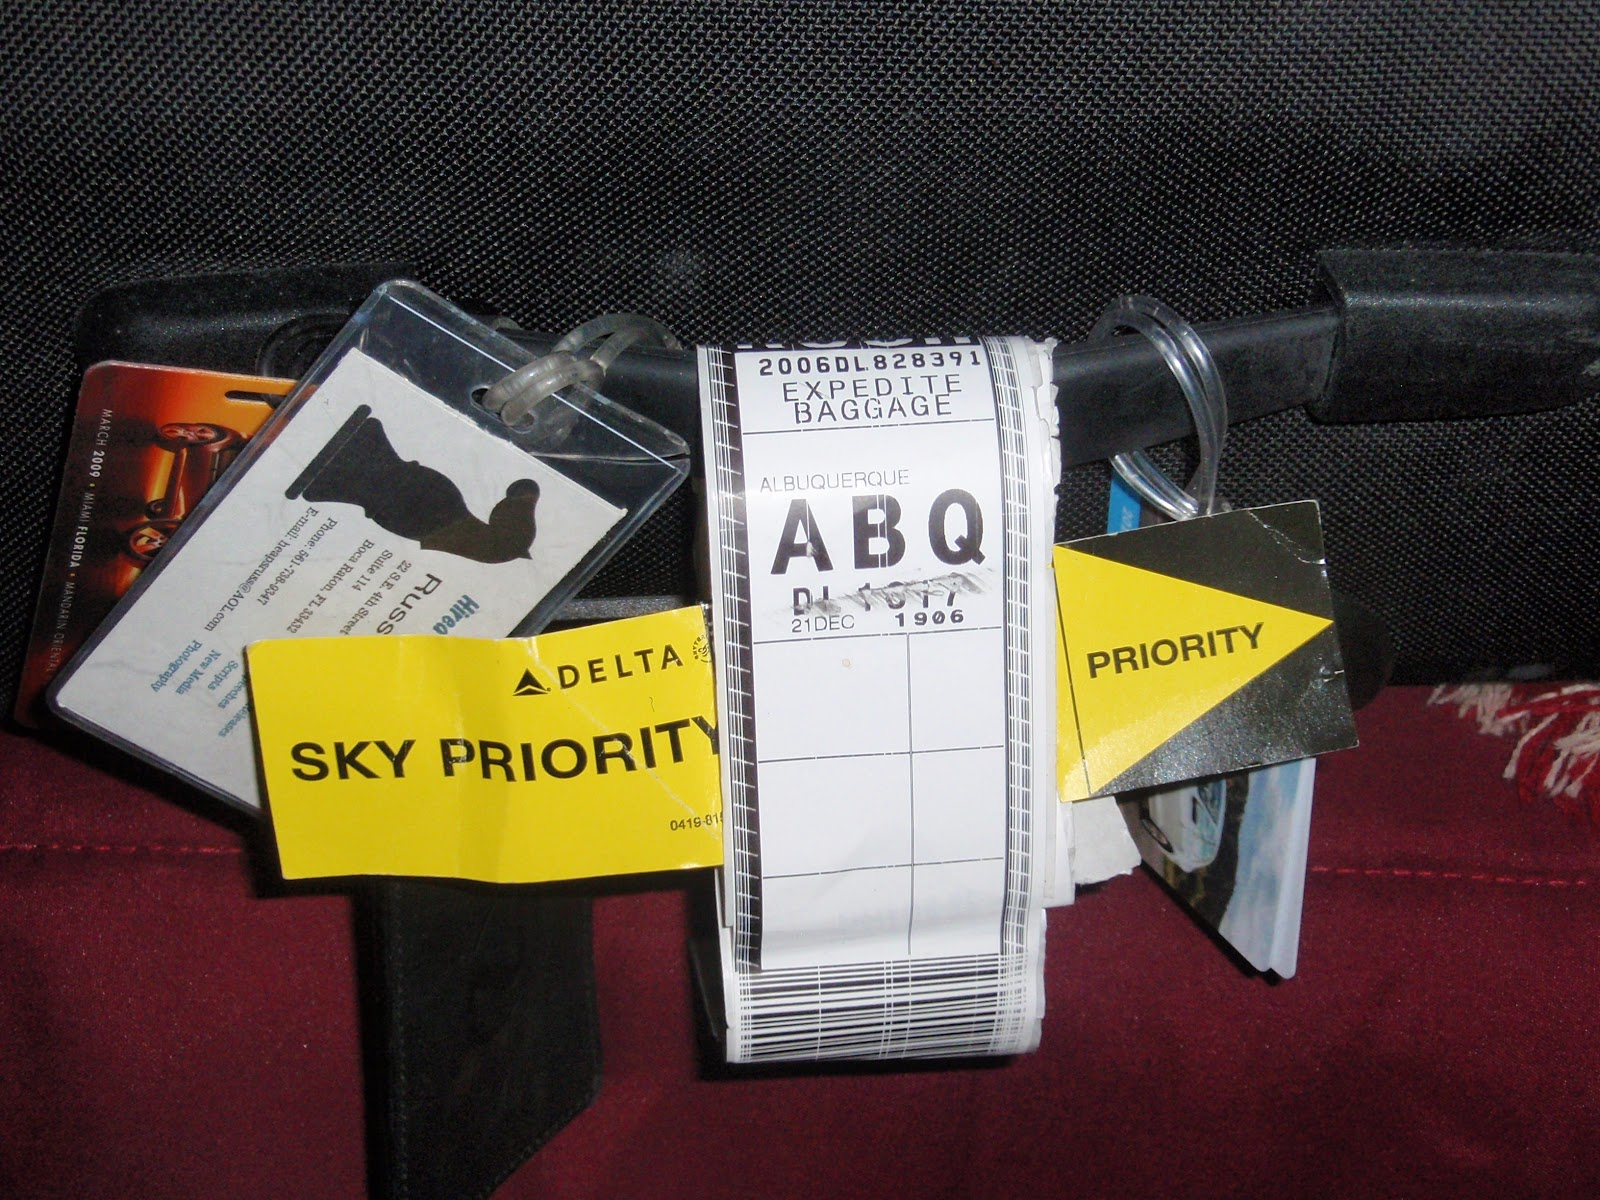 Priority Tag: Clanging Bell: Another Flight On Delta Or The Mysterious